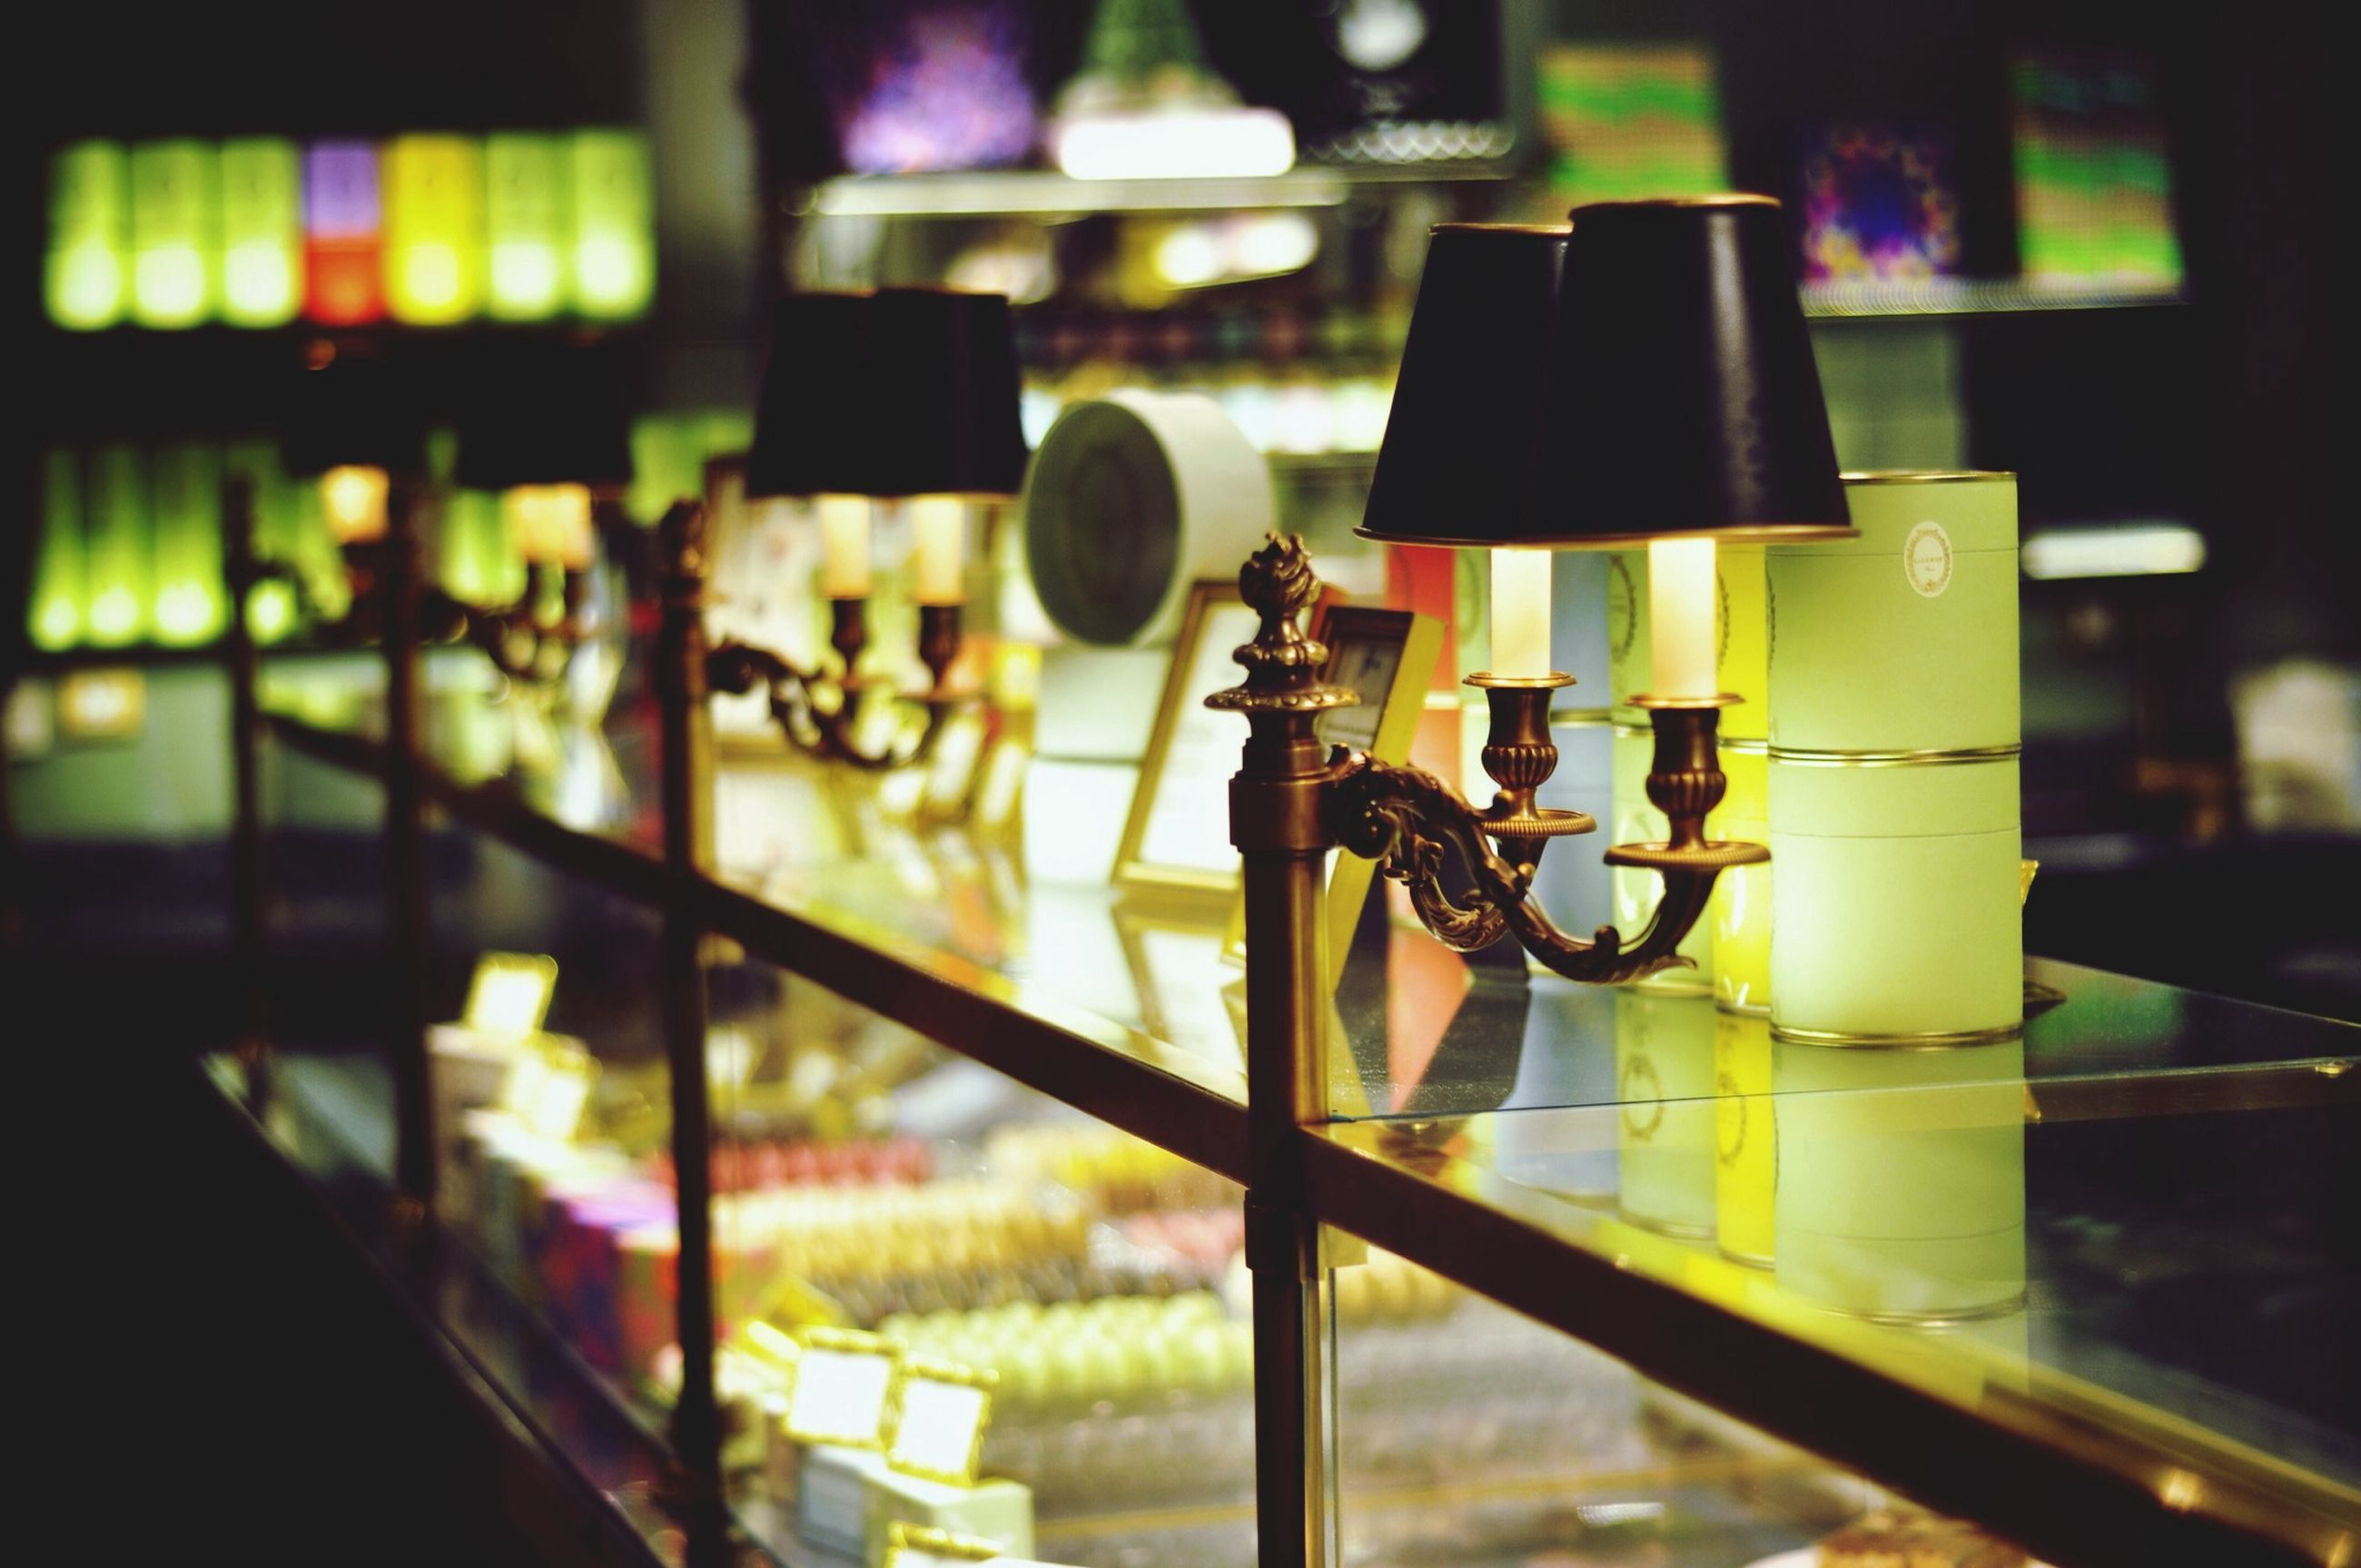 indoors, focus on foreground, selective focus, lighting equipment, illuminated, metal, close-up, bicycle, night, no people, hanging, in a row, technology, metallic, built structure, still life, equipment, electricity, protection